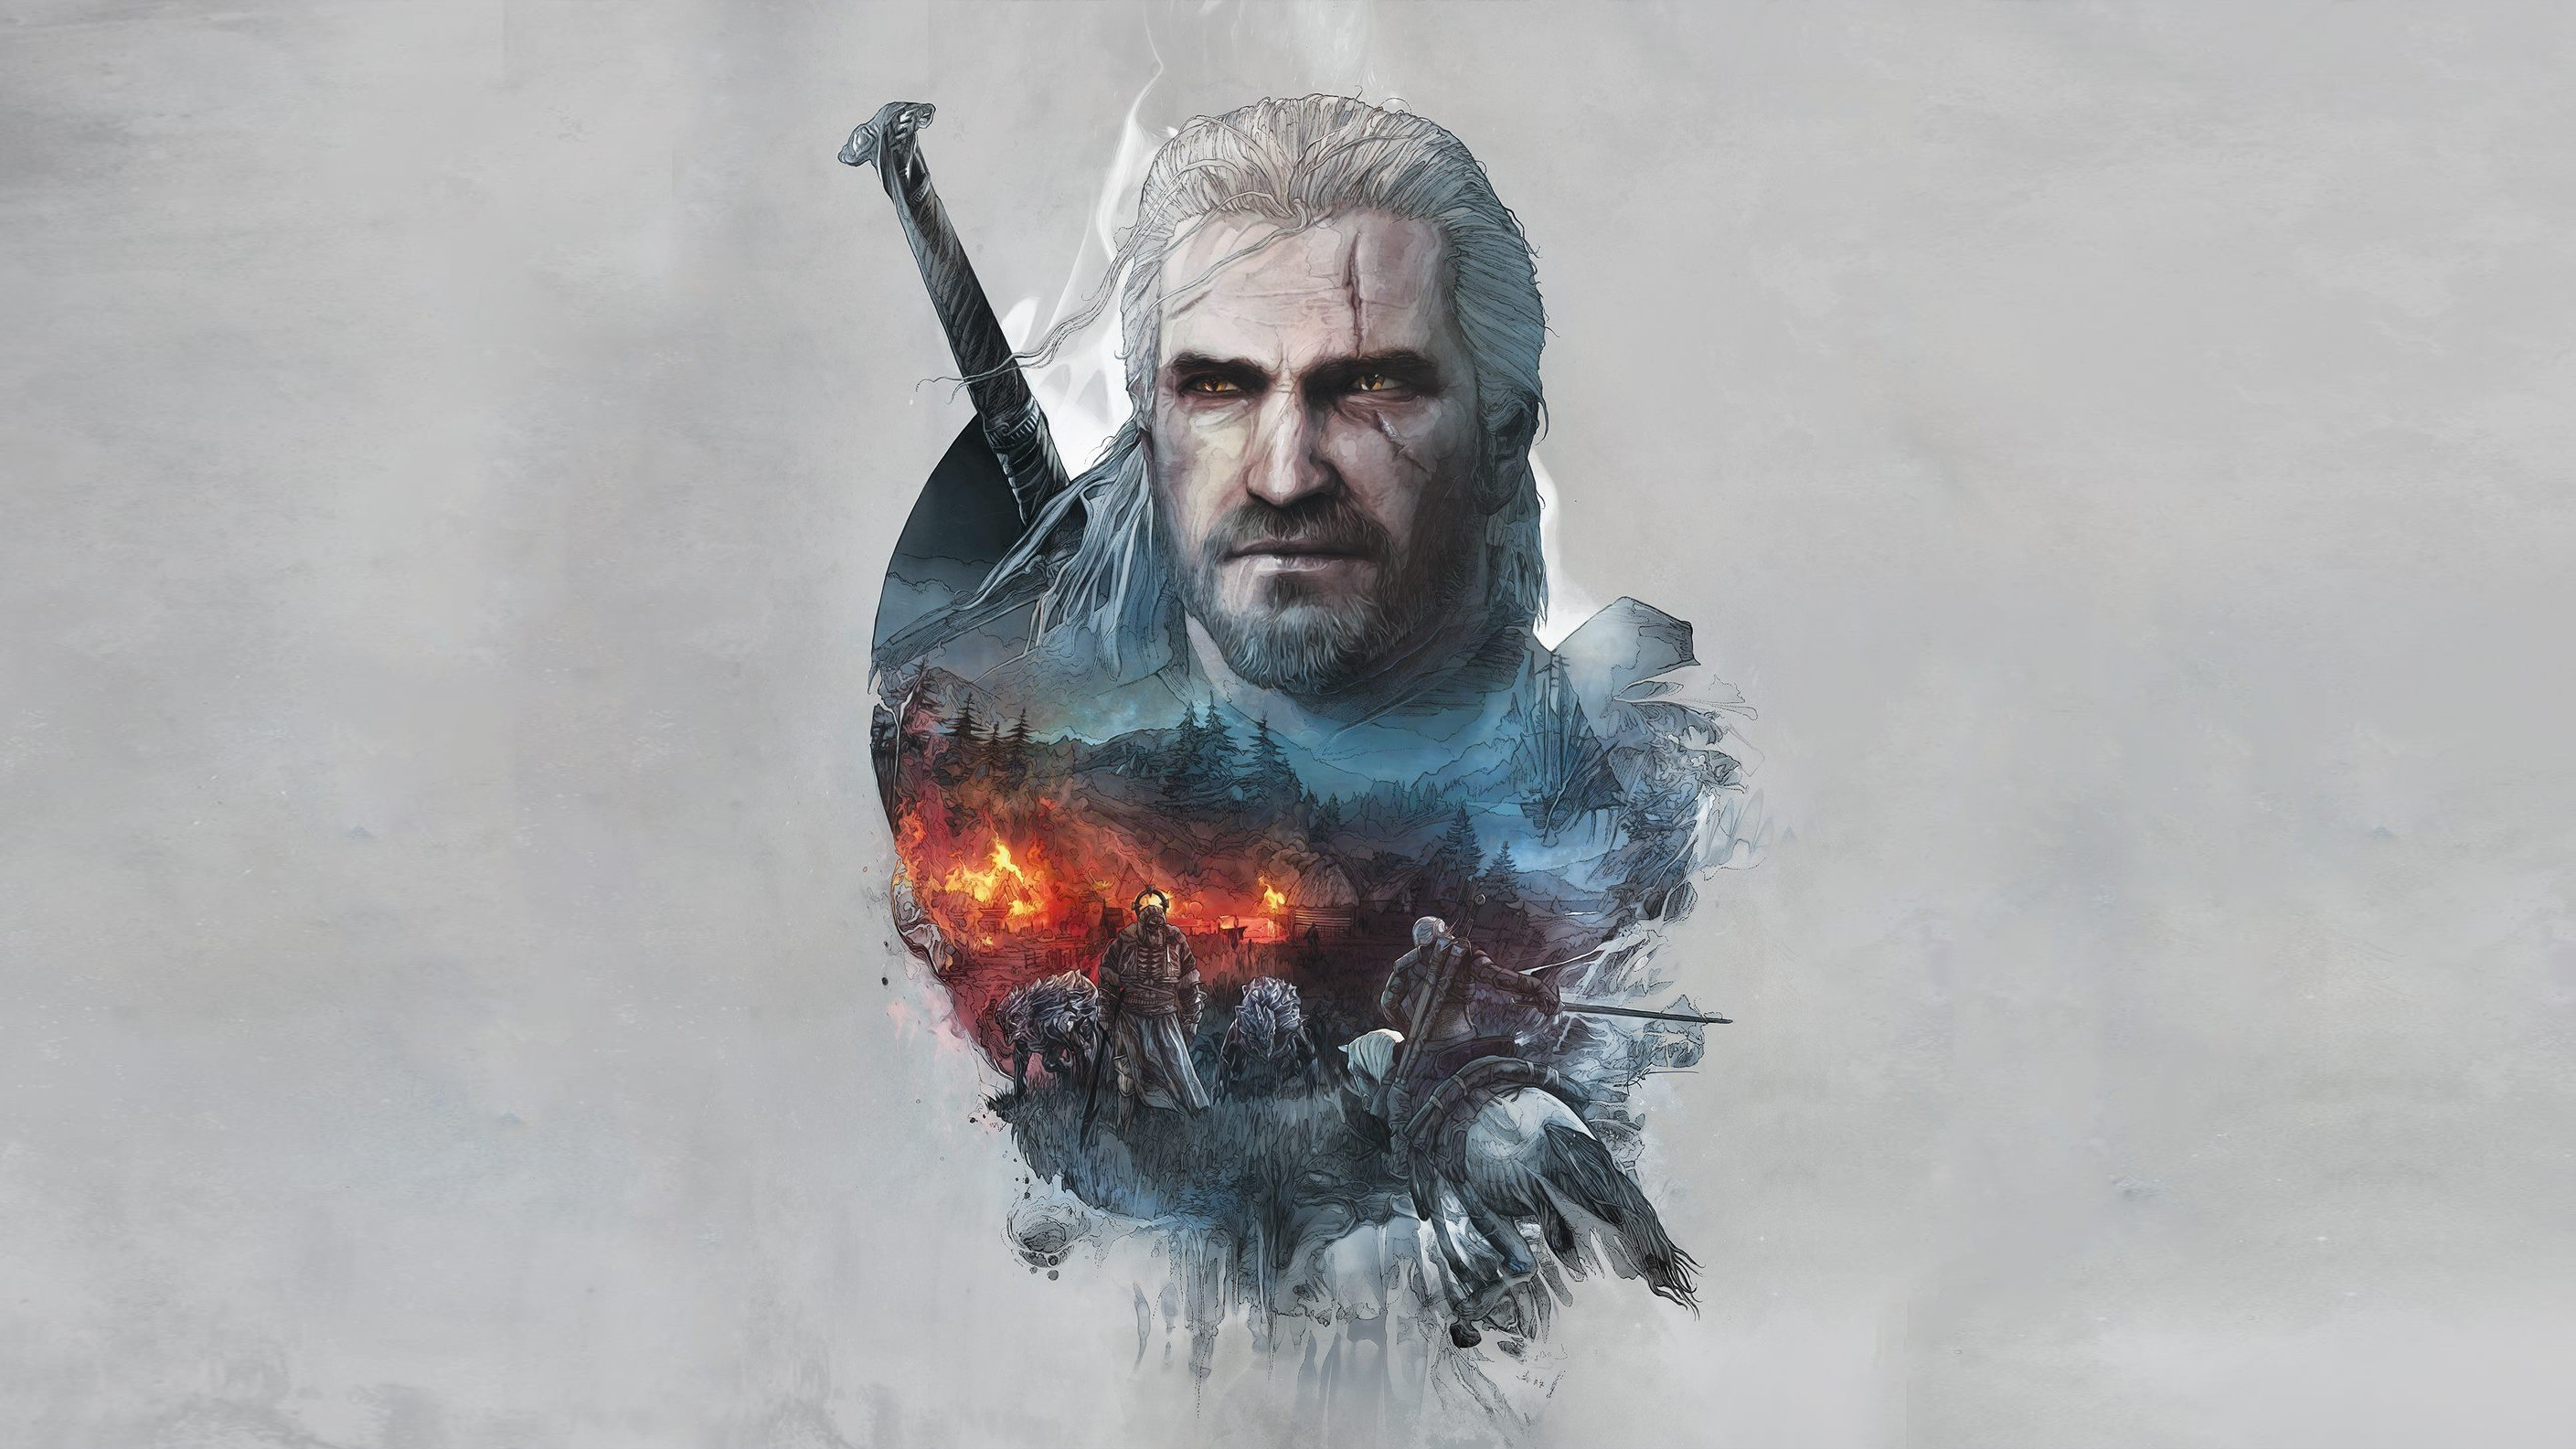 The Witcher 3 Geralt of Rivia Artwork